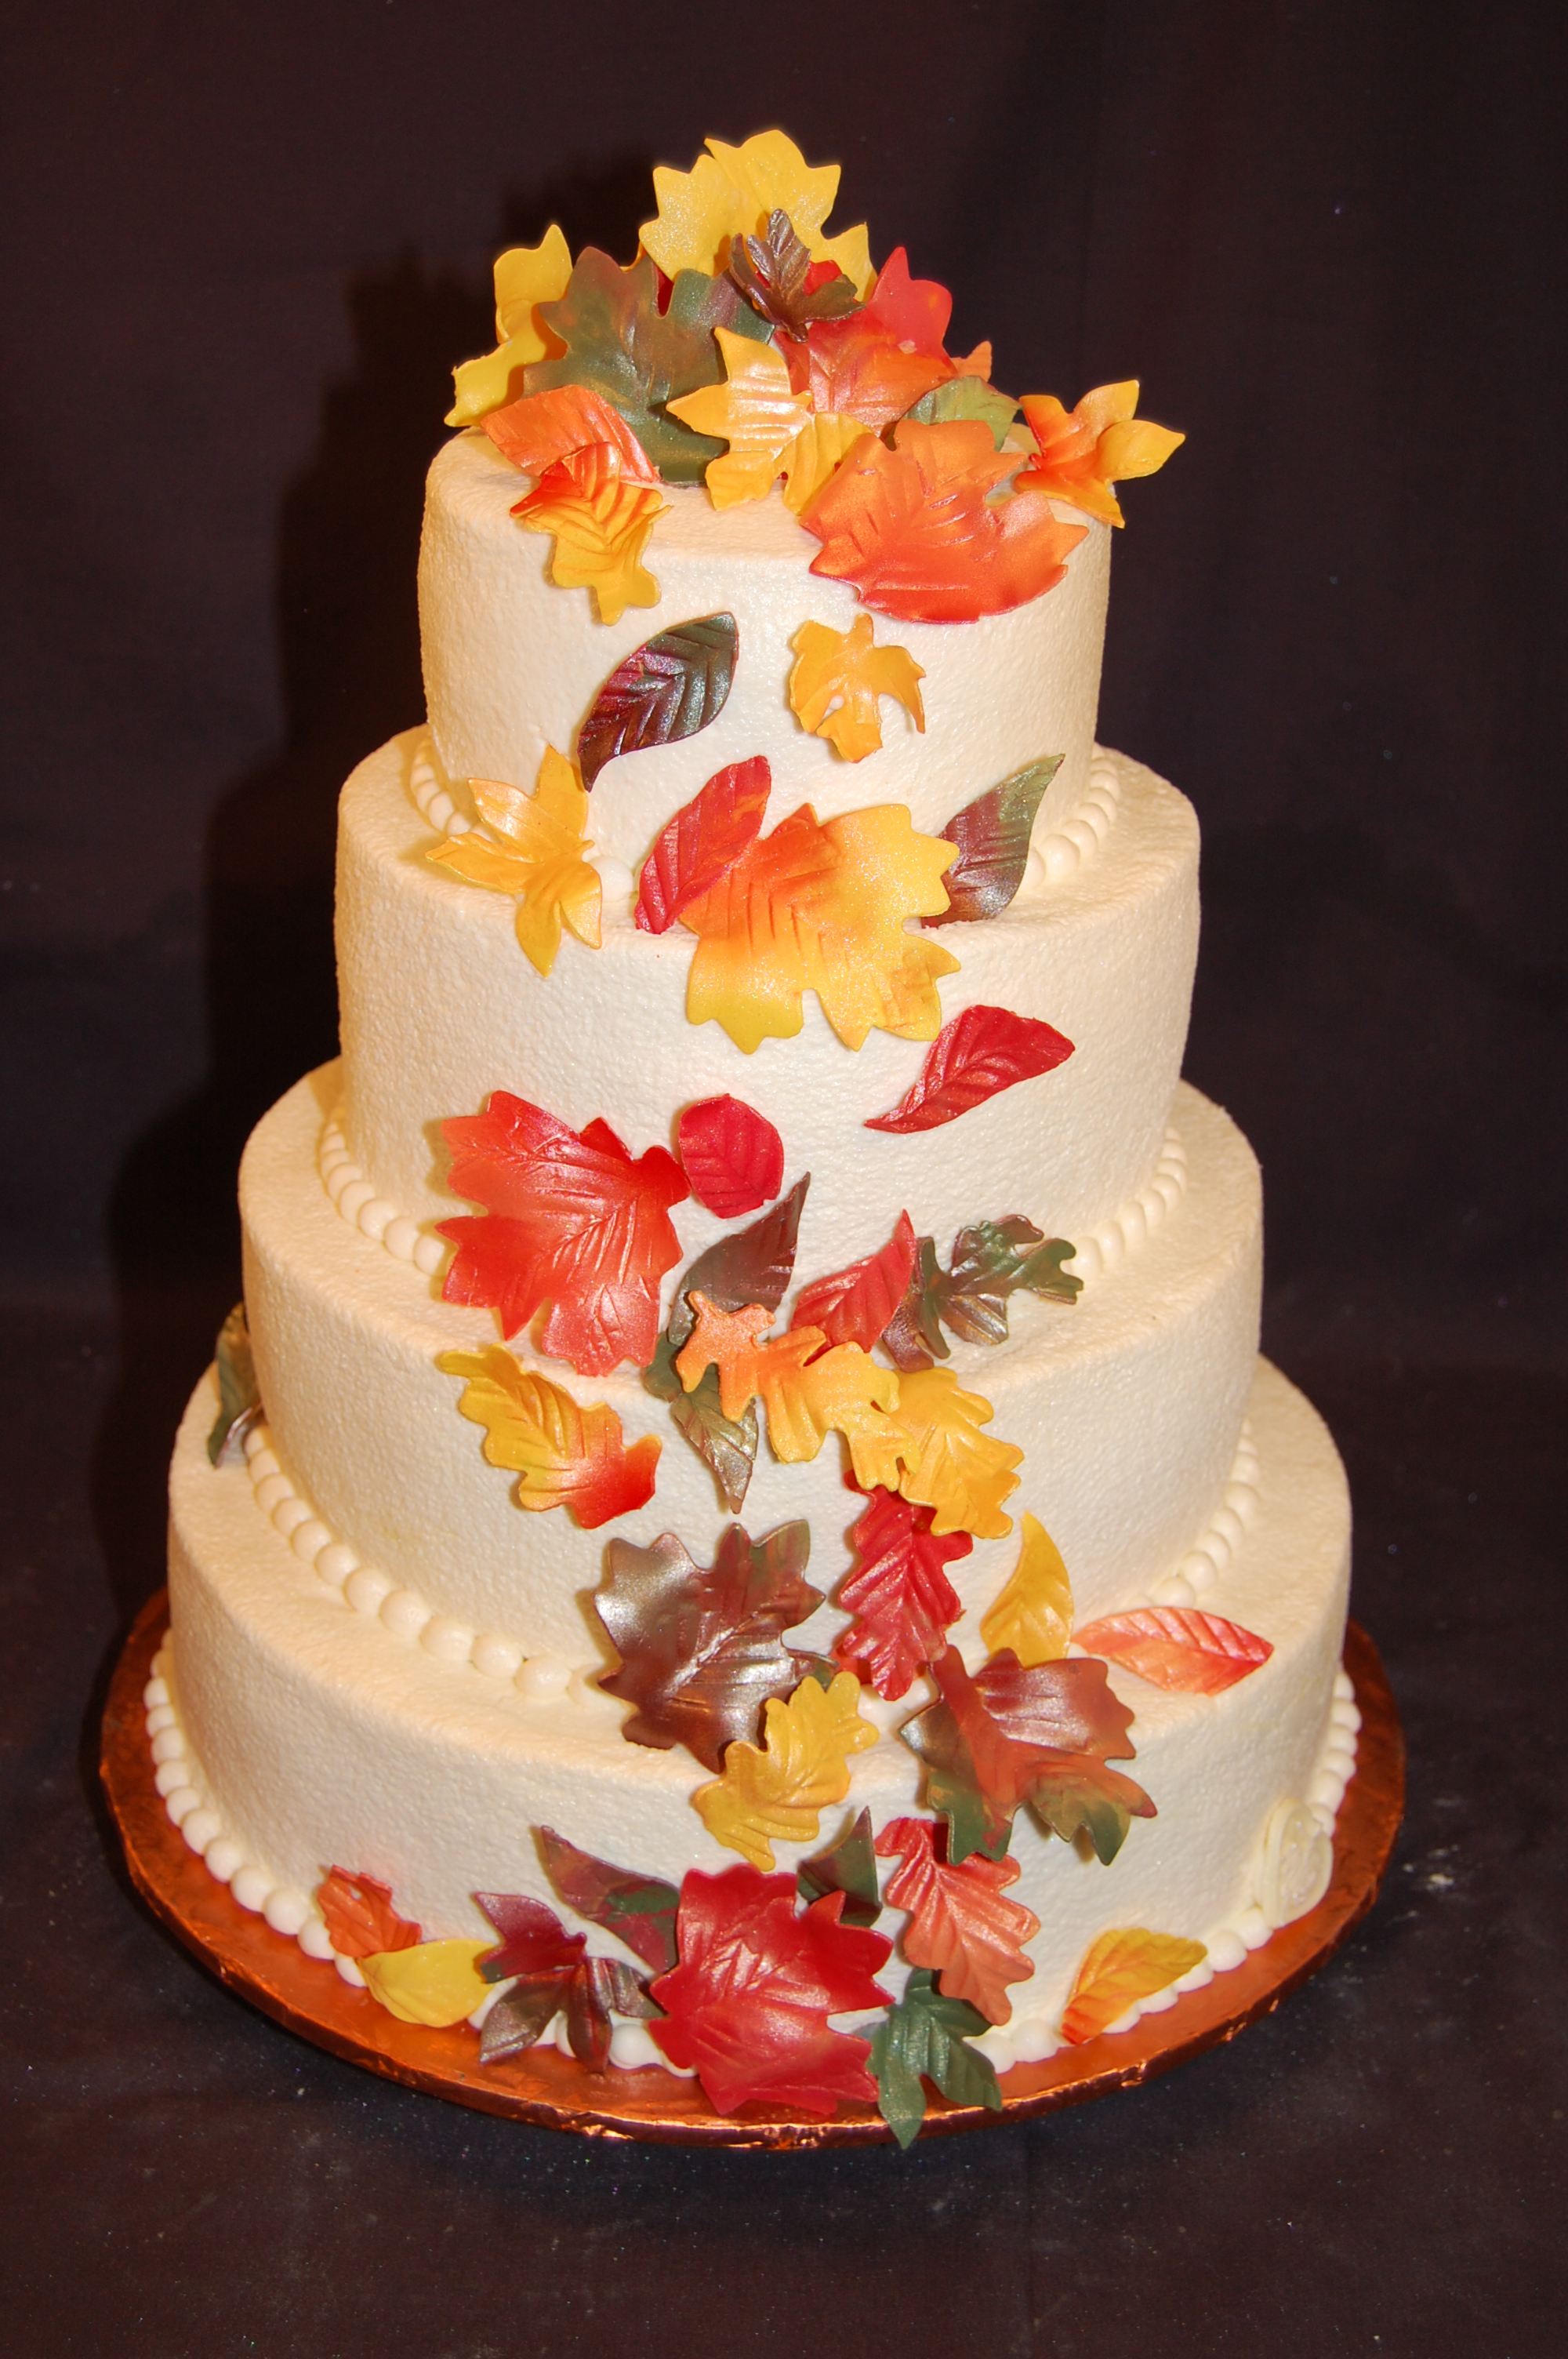 1000 images about Harvest cakes on Pinterest